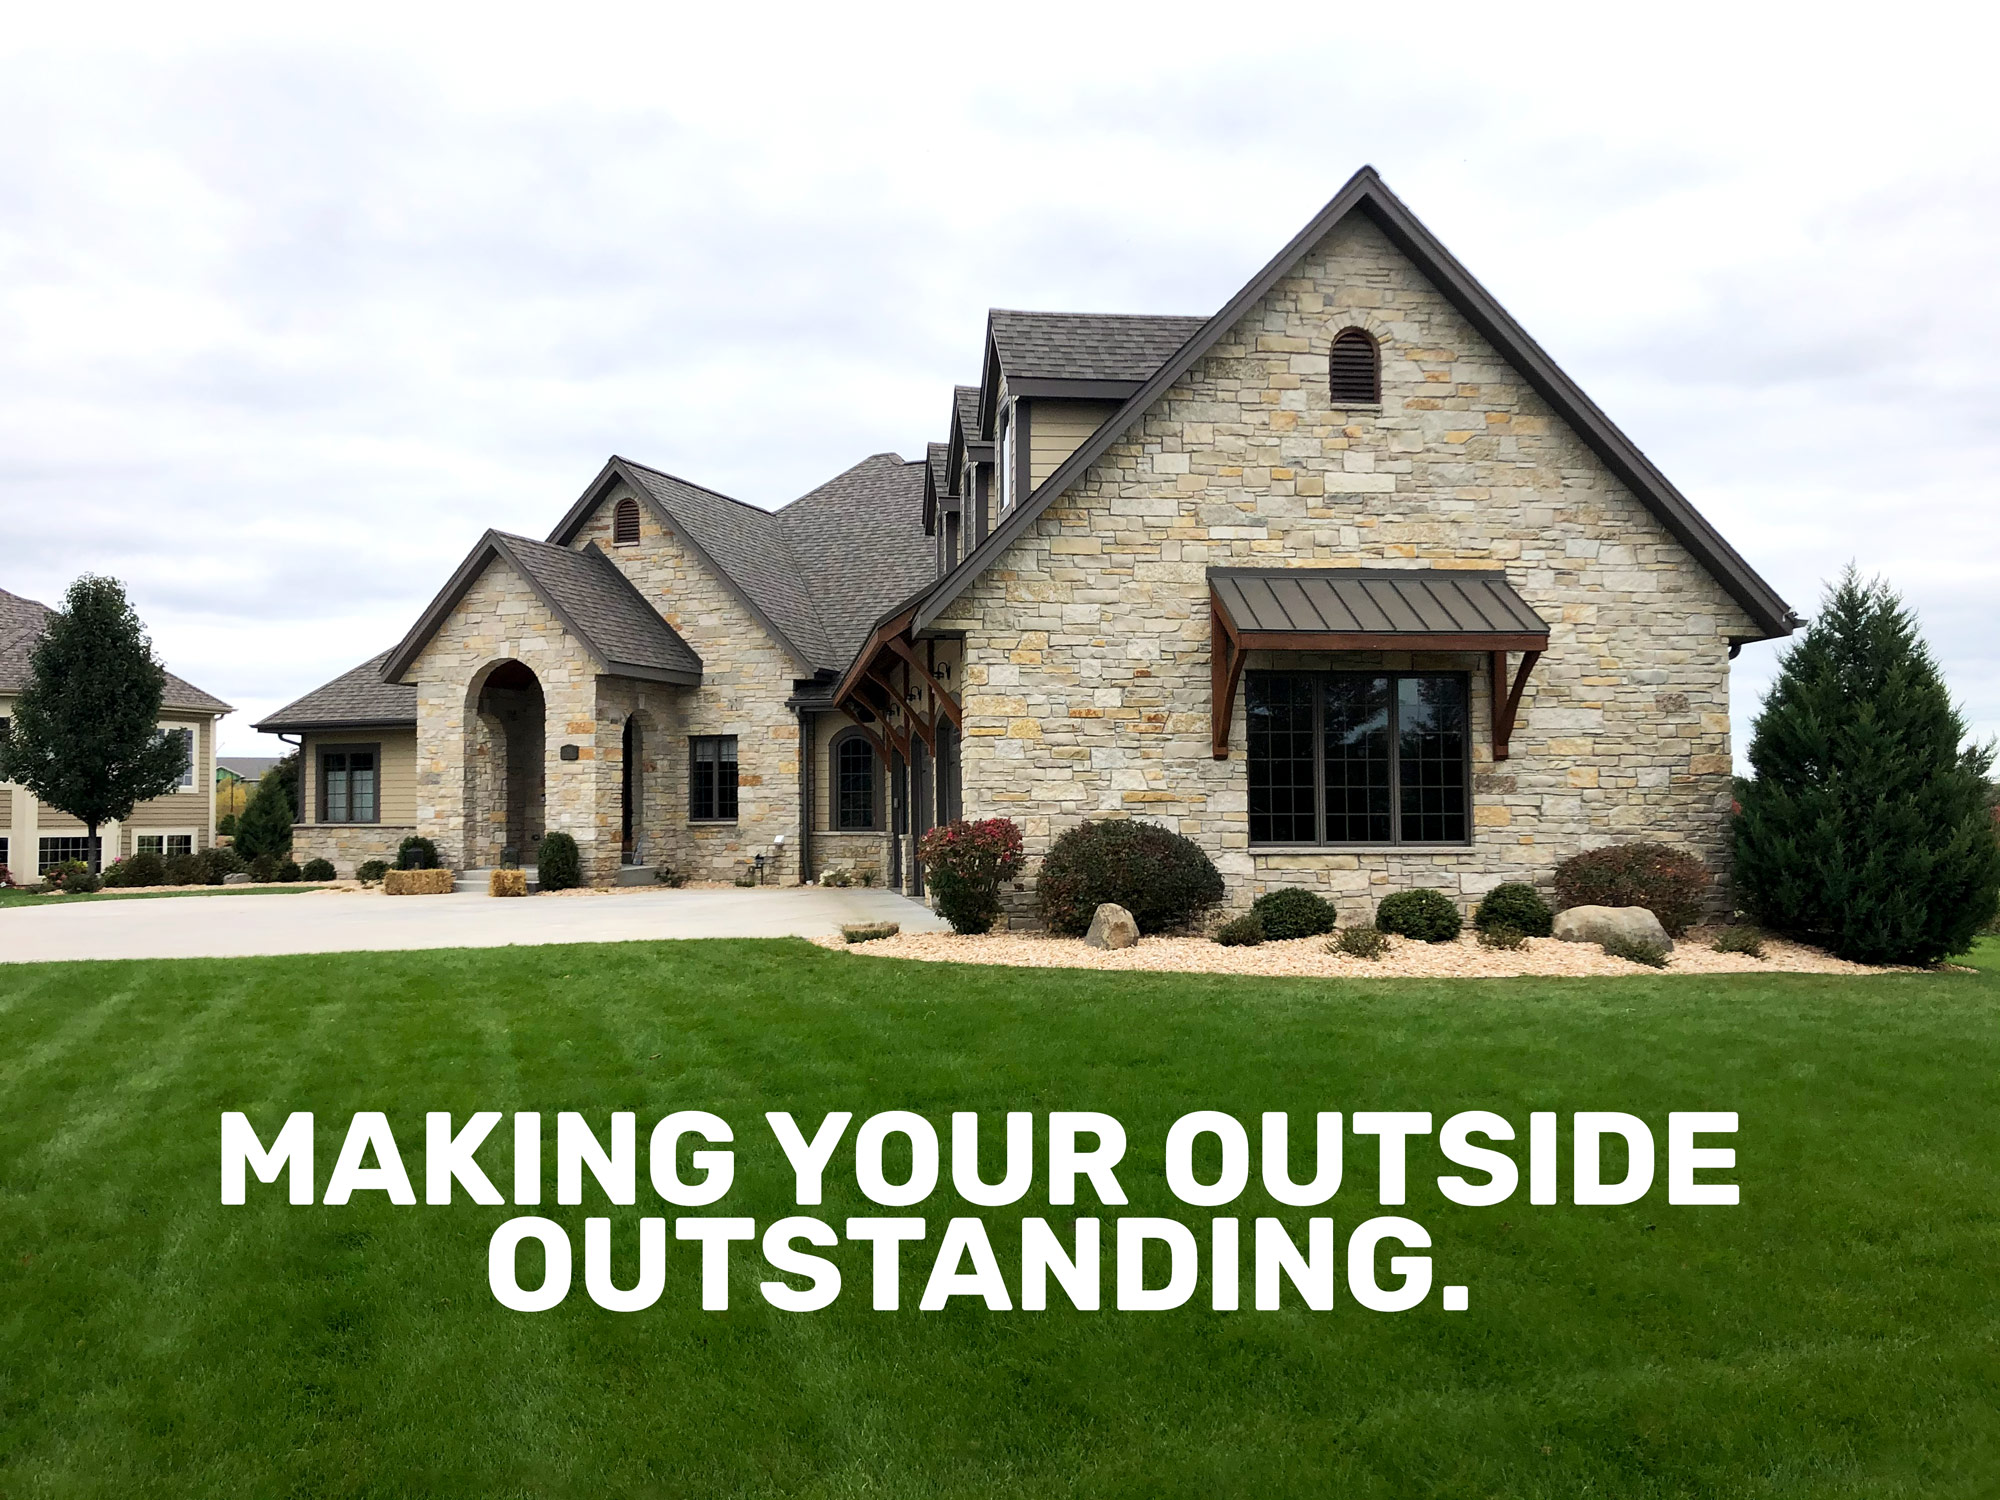 Making your outside outstanding.